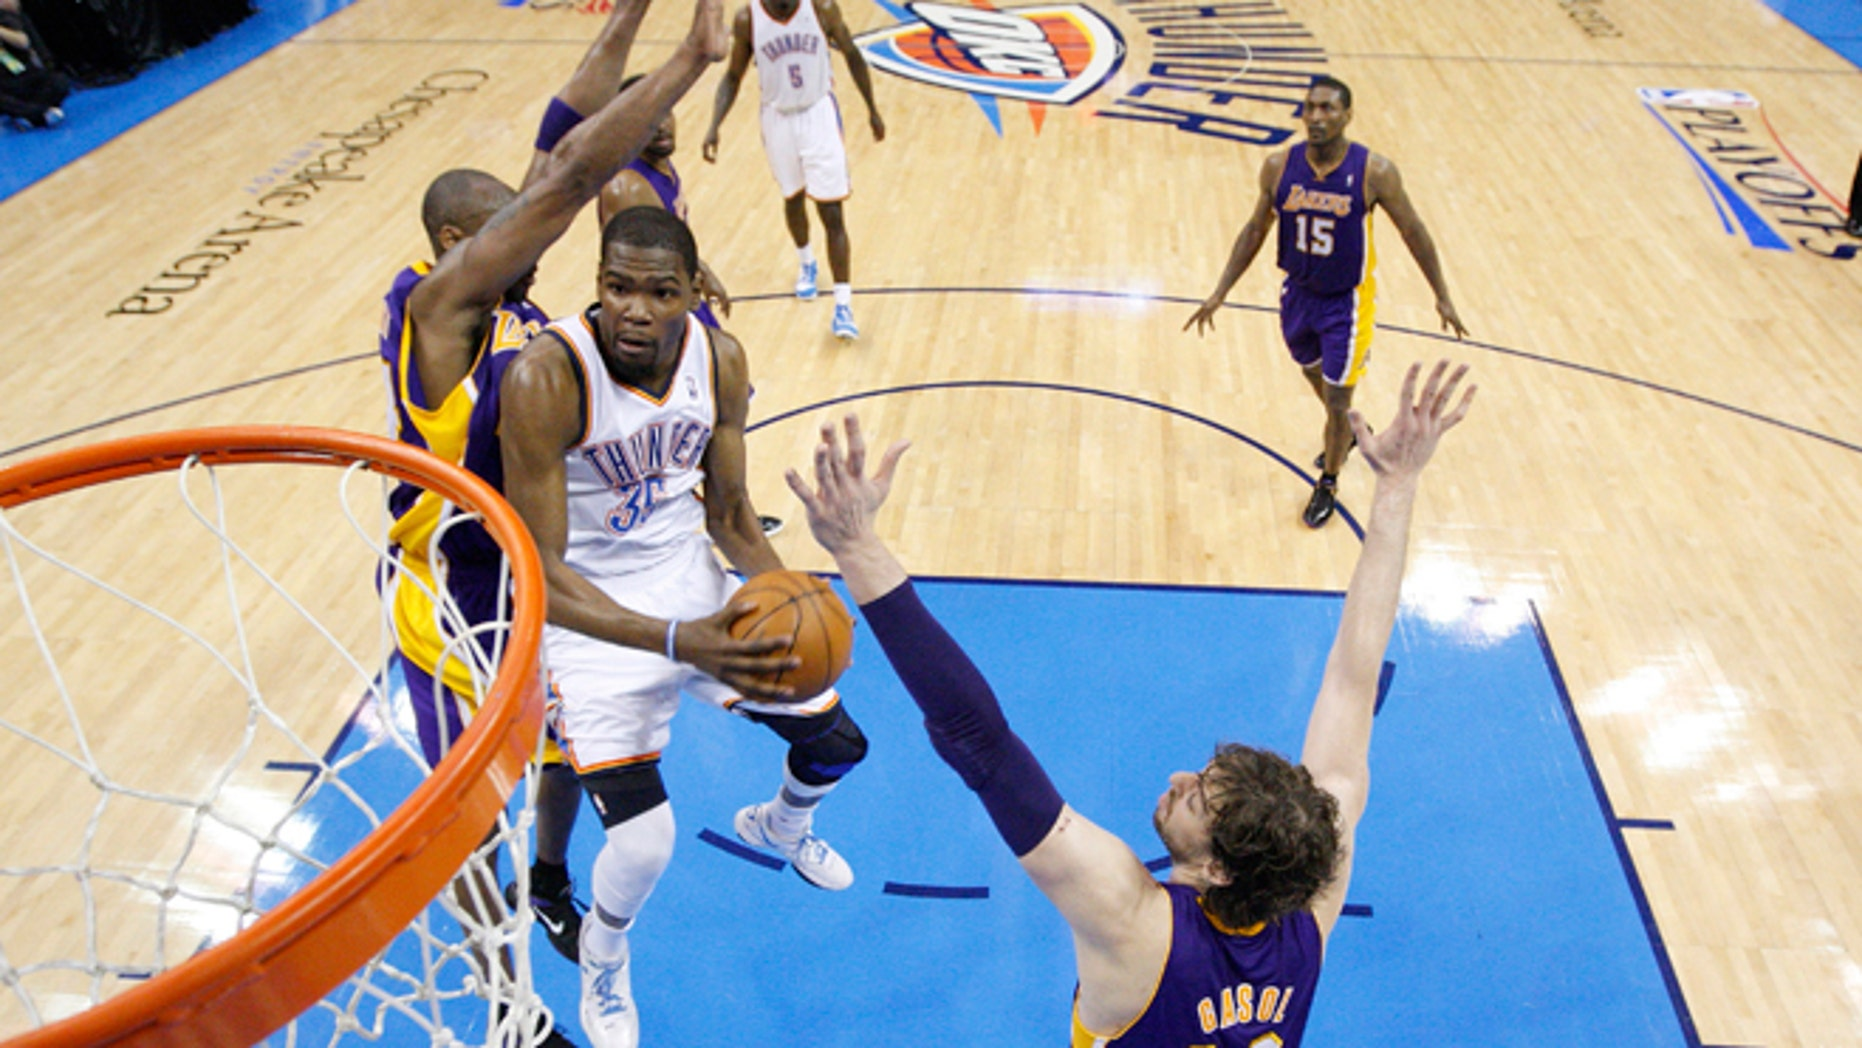 Oklahoma City Thunder forward Kevin Durant, center, goes up for a shot between Los Angeles Lakers guard Kobe Bryant, left and forward Pau Gasol (16) in the second quarter in Game 2 of an NBA basketball playoffs Western Conference semifinal, in Oklahoma City on Wednesday, May 16, 2012. Oklahoma City won 77-75. (AP Photo/Sue Ogrocki, Pool)